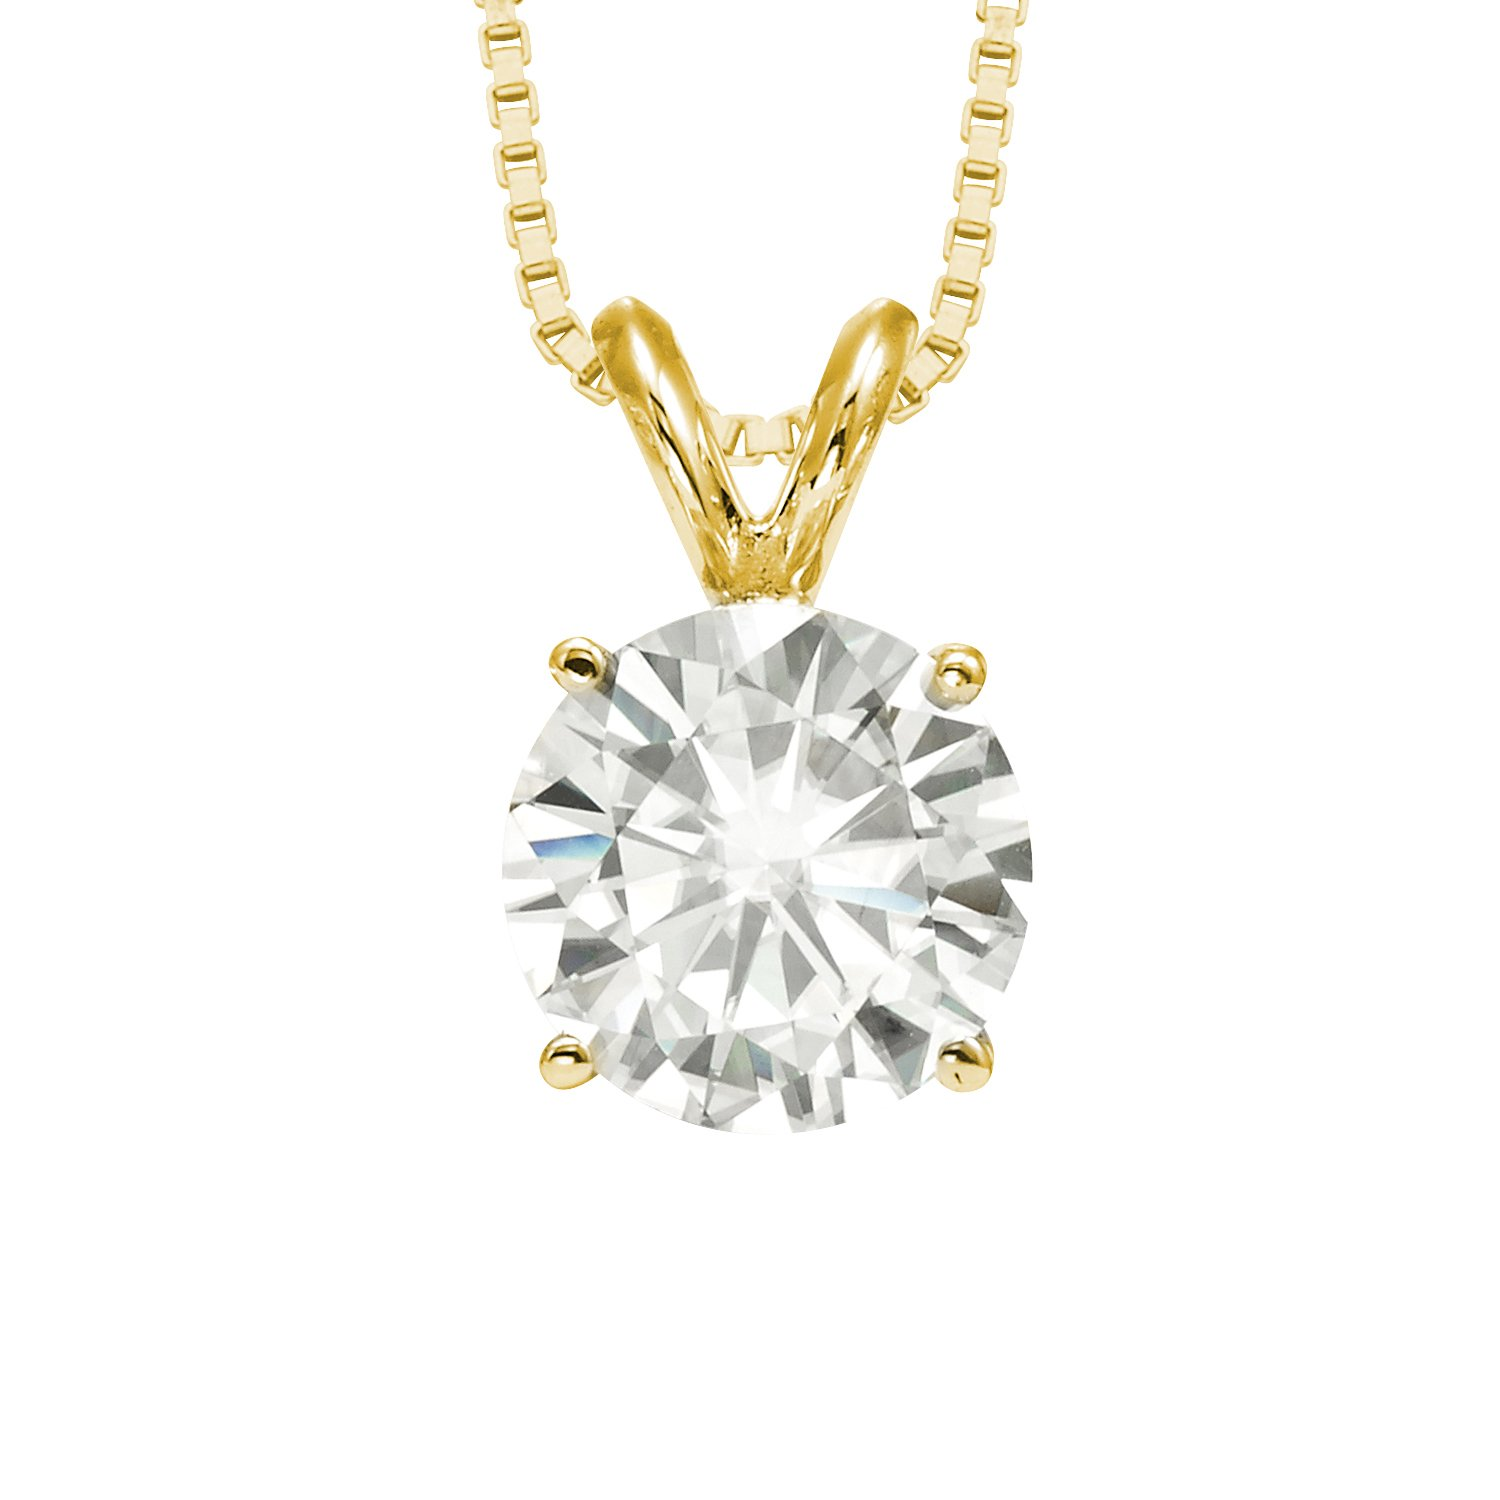 Forever Brilliant Round Cut 9.5mm Moissanite Pendant Necklace, 3.10ct DEW By Charles & Colvard